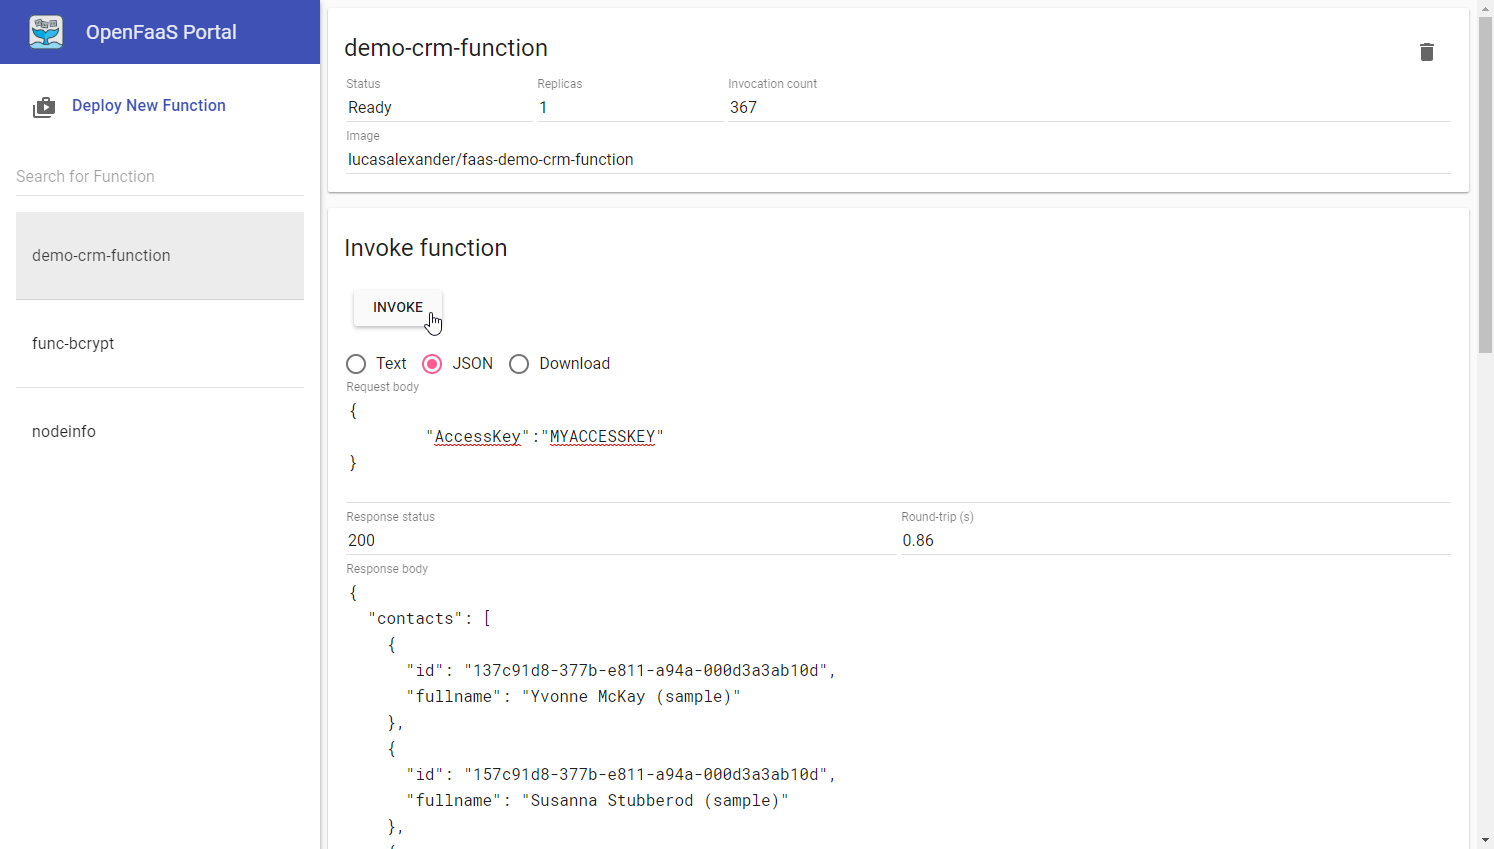 Building a custom Dynamics 365 data interface with OpenFaaS